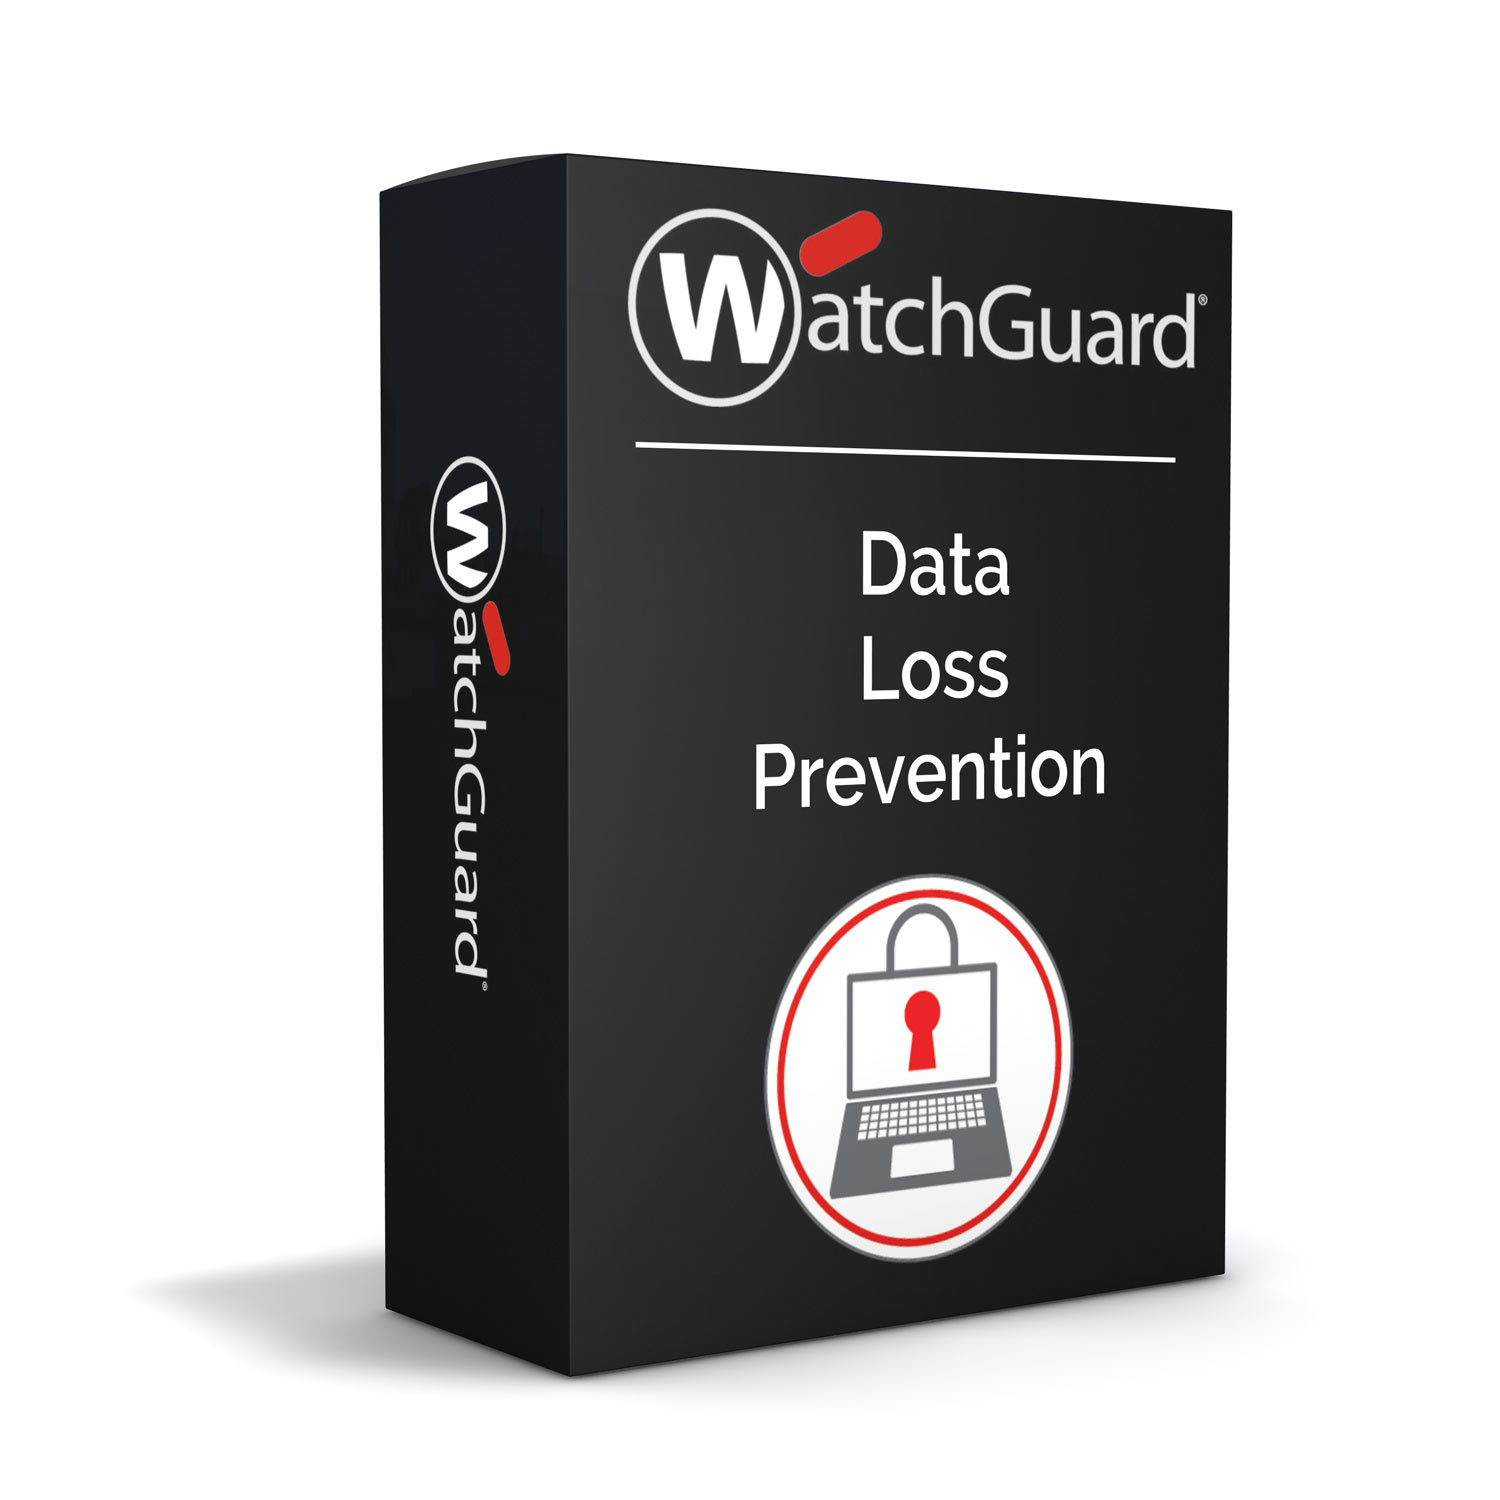 WatchGuard Data Loss Prevention 1-yr for FireboxV Large